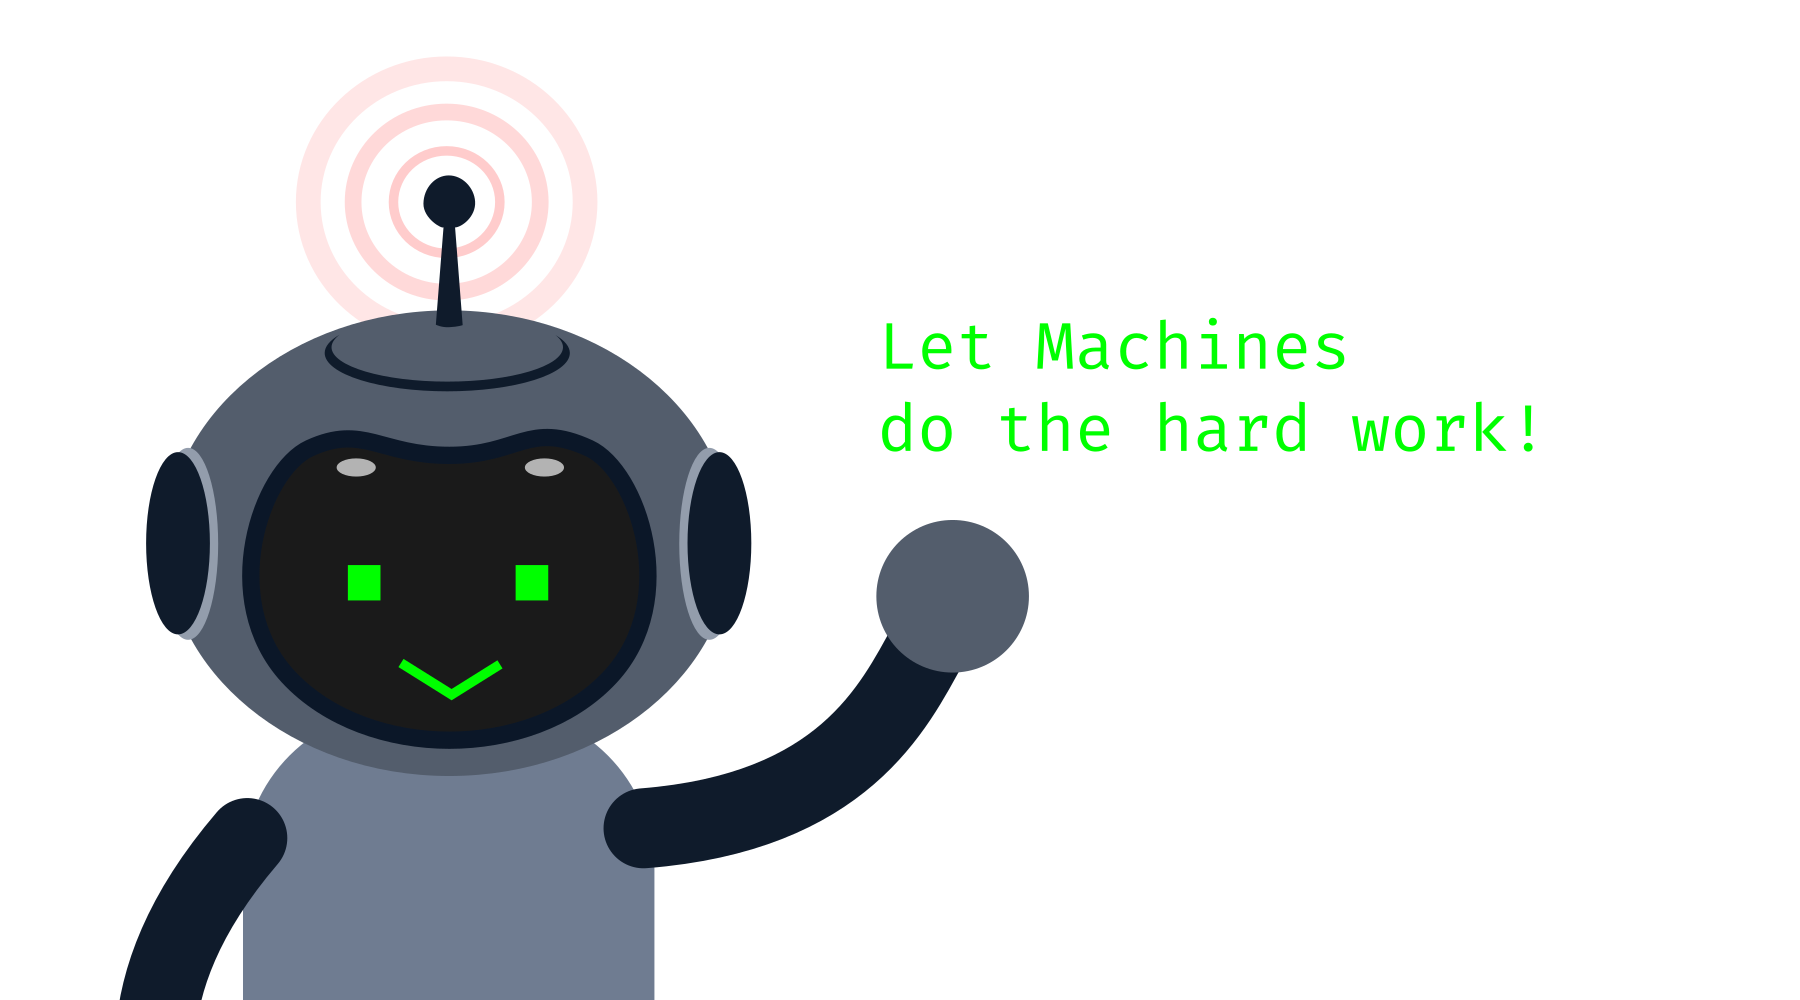 Let machines do the hard work.